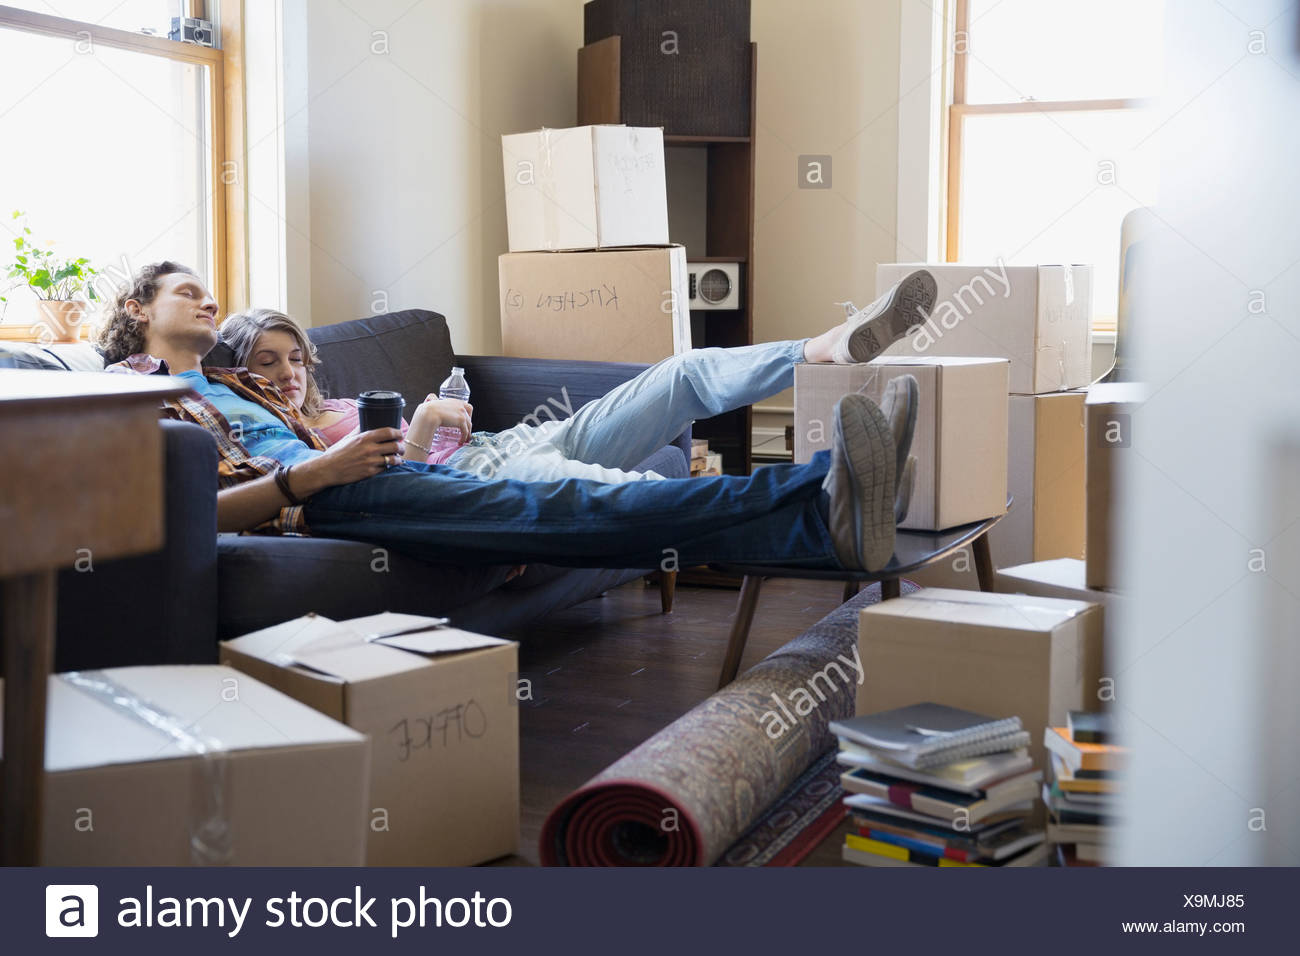 Couple relaxing on sofa surrounded by moving boxes - Stock Image